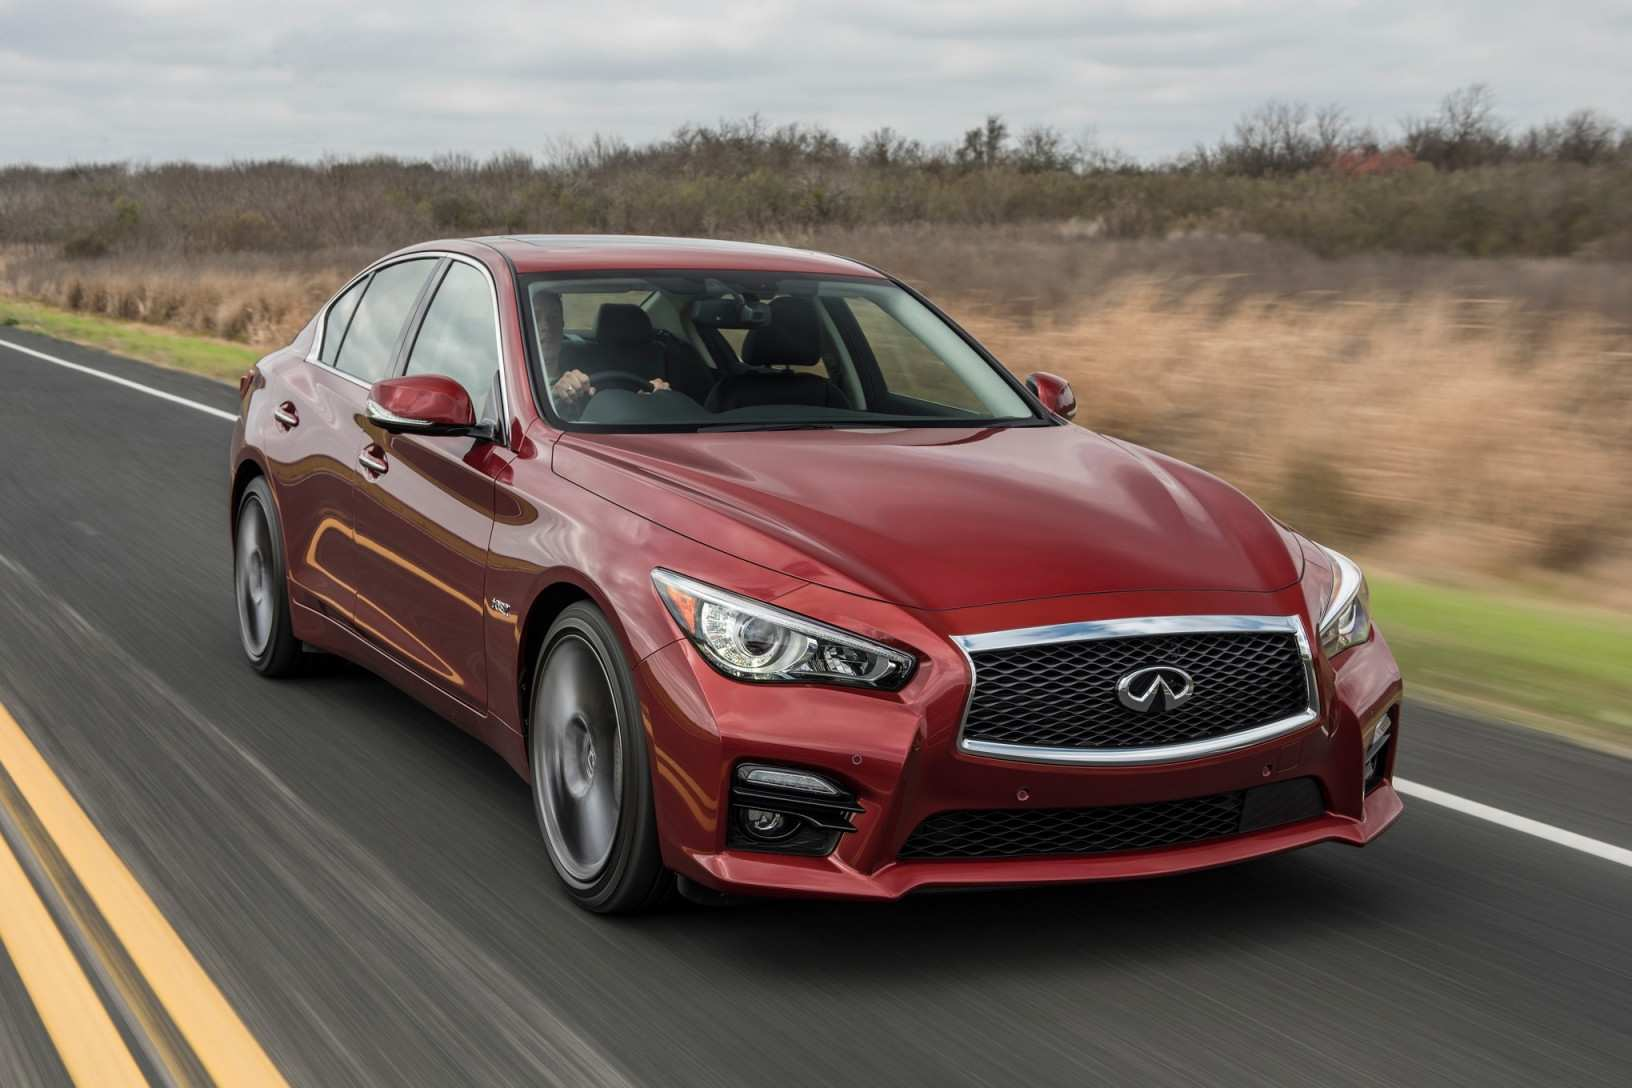 46 All New 2019 Infiniti Q50 Redesign Spesification